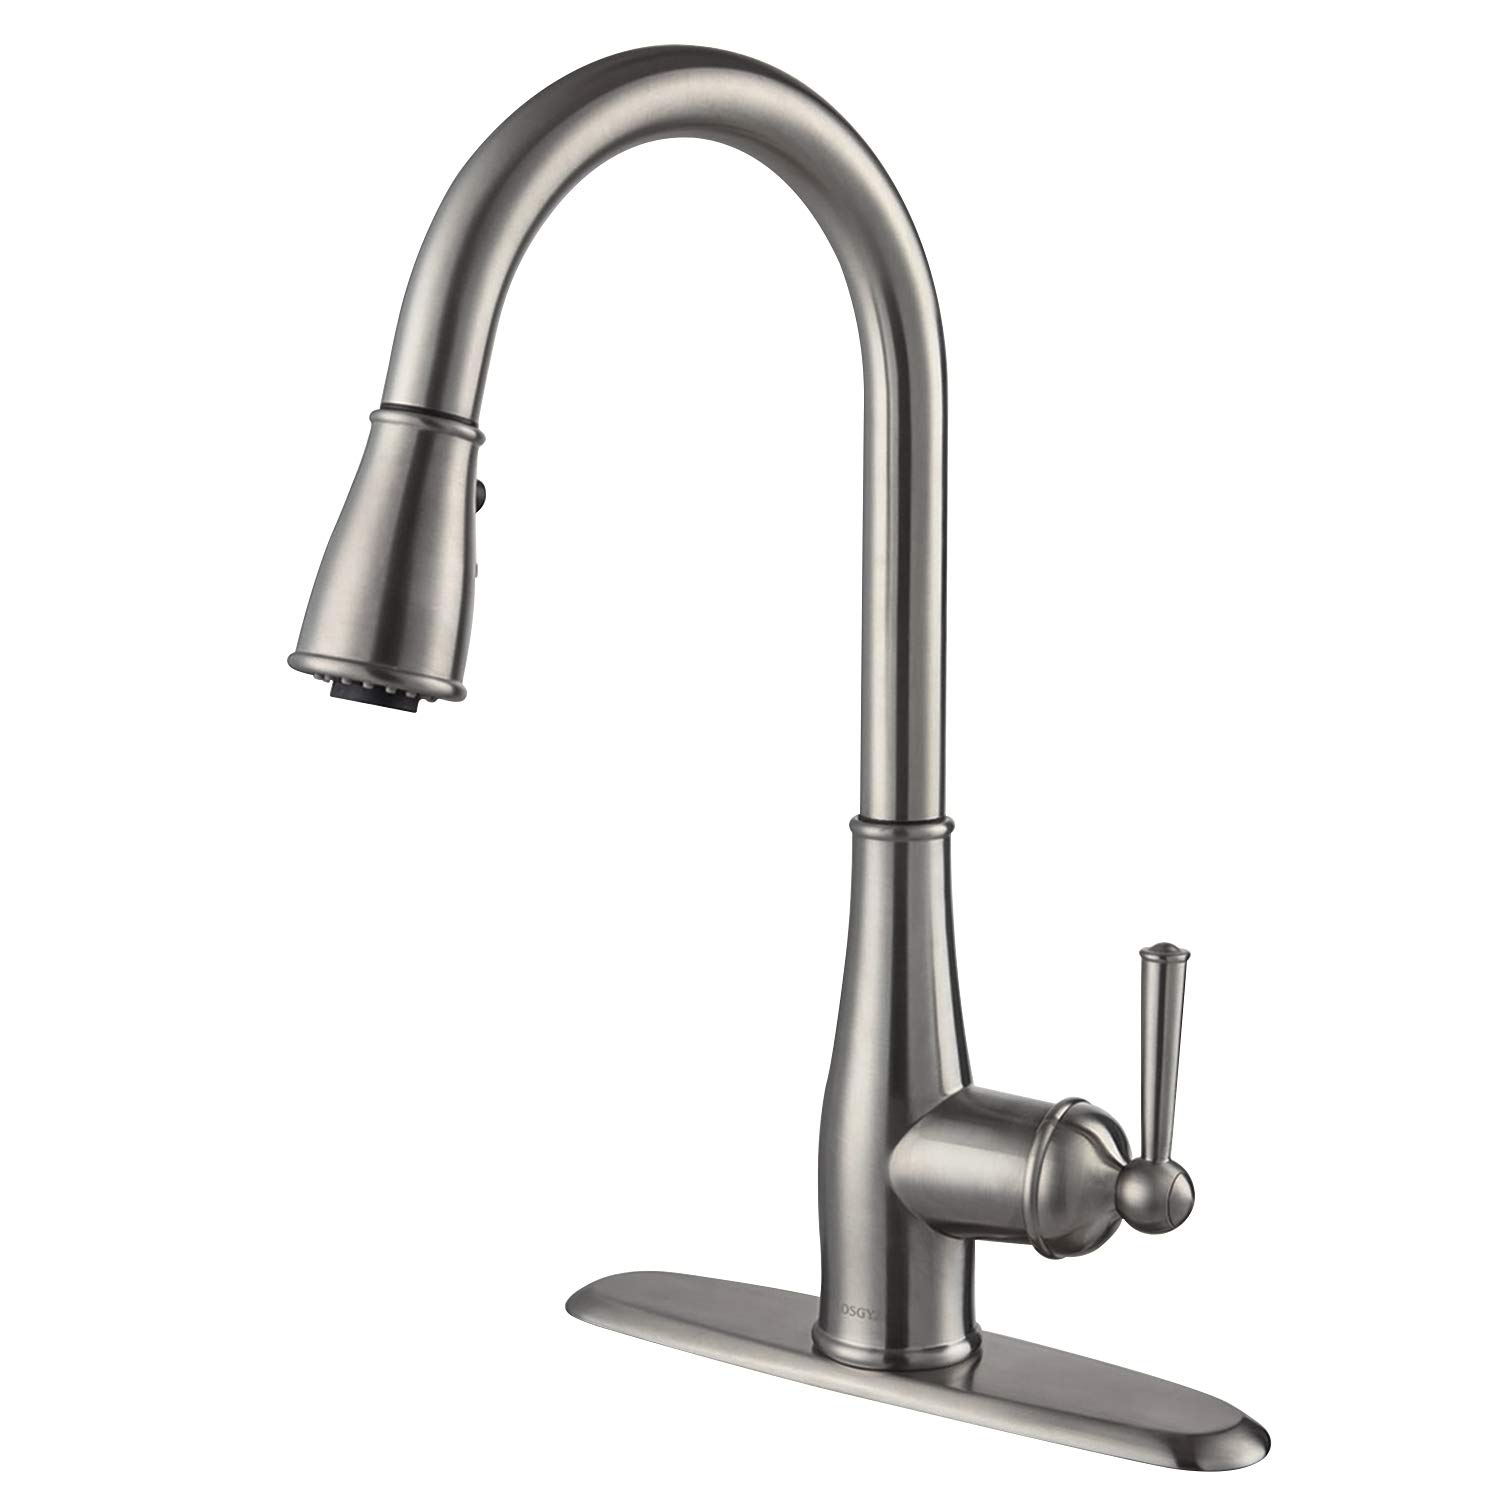 Moen 7295C Brantford One-Handle Pullout Kitchen Faucet Featuring Power Clean and Reflex, Chrome